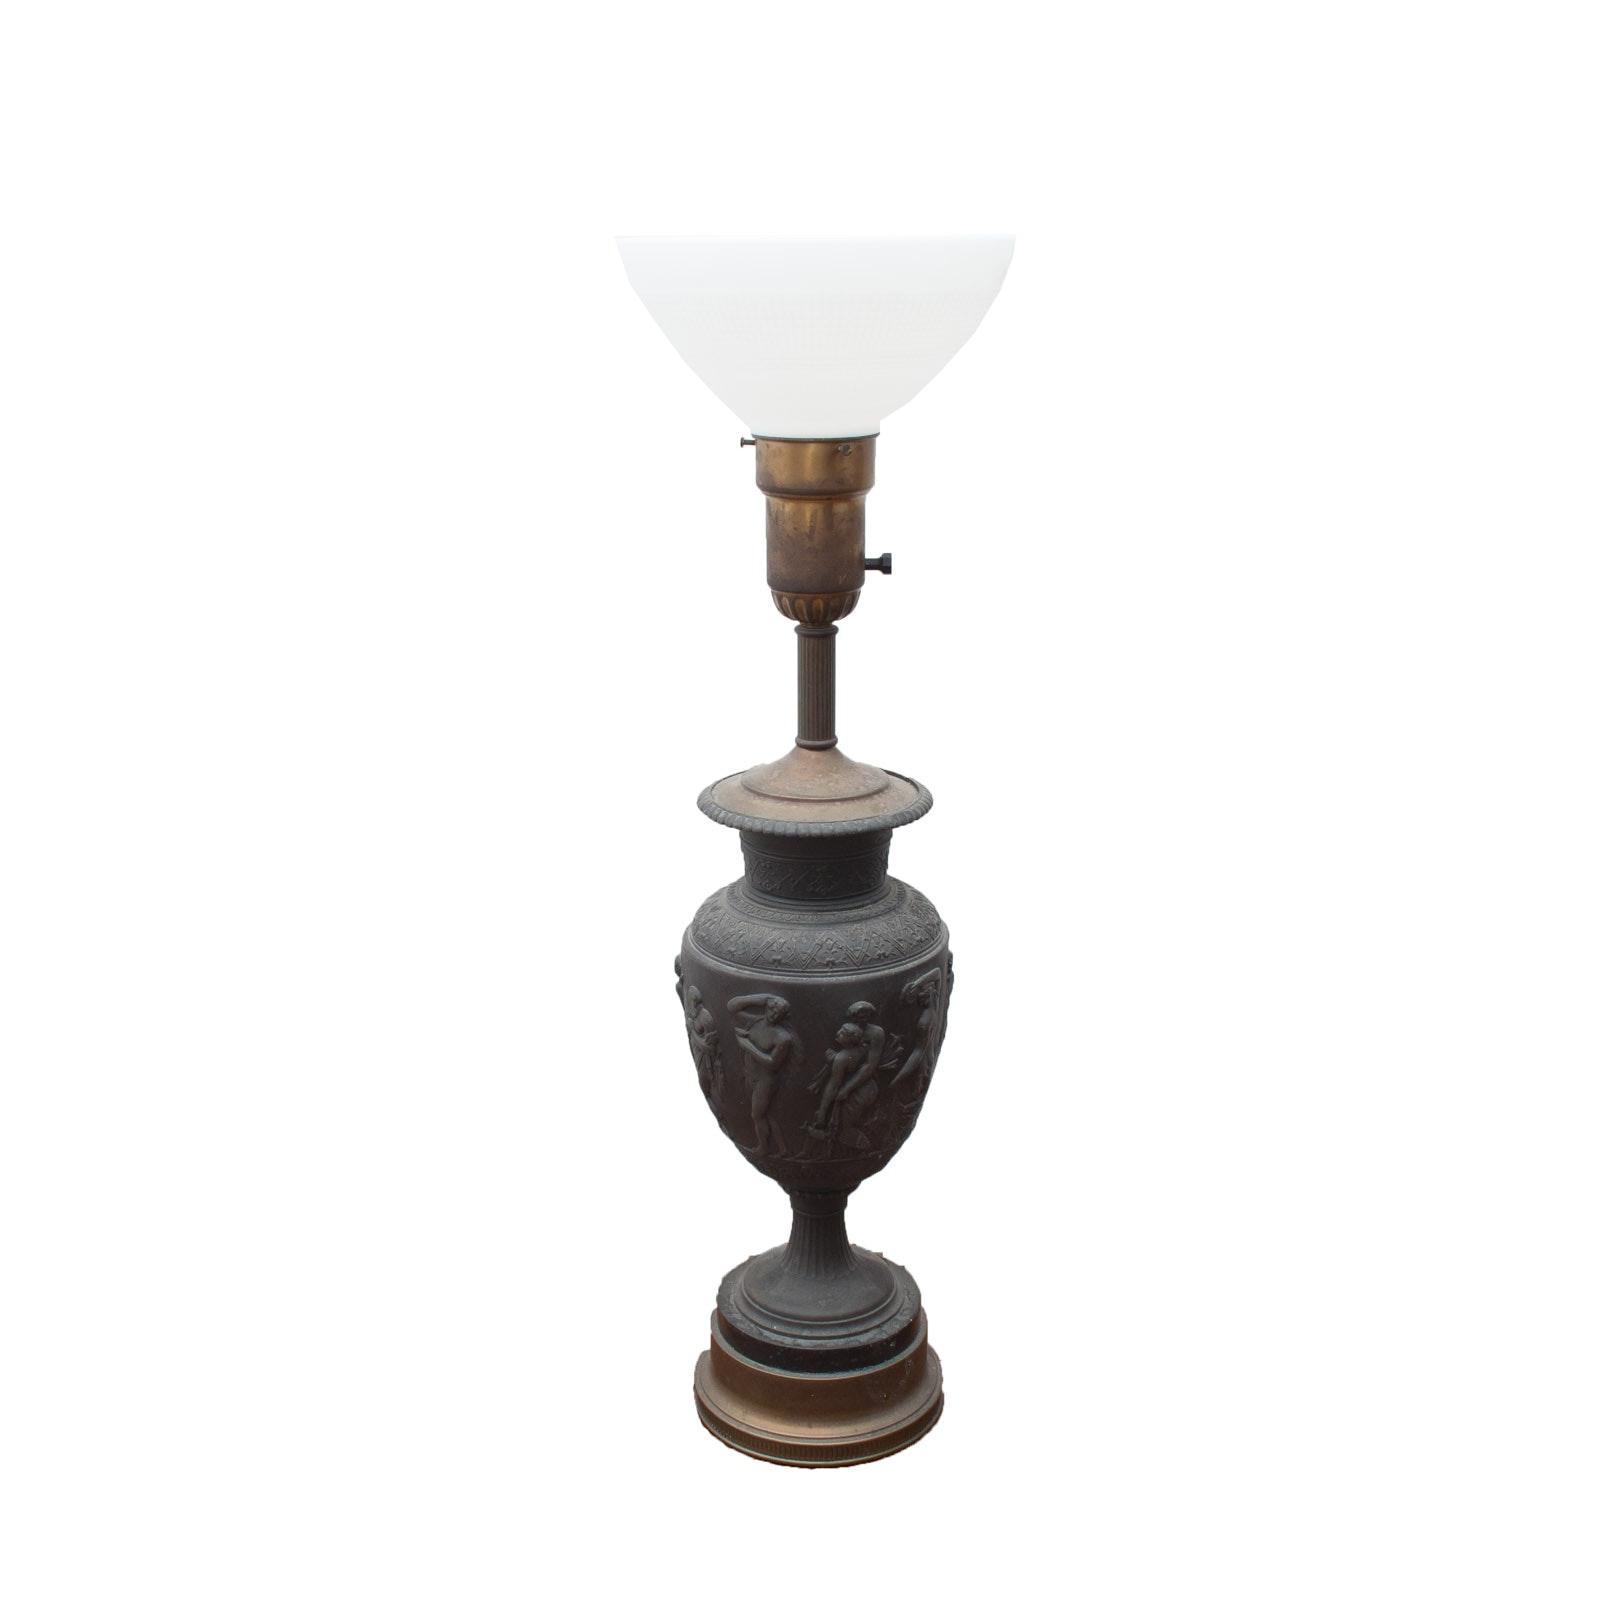 Antique Bronze NeoClassical Style Urn Table Lamp